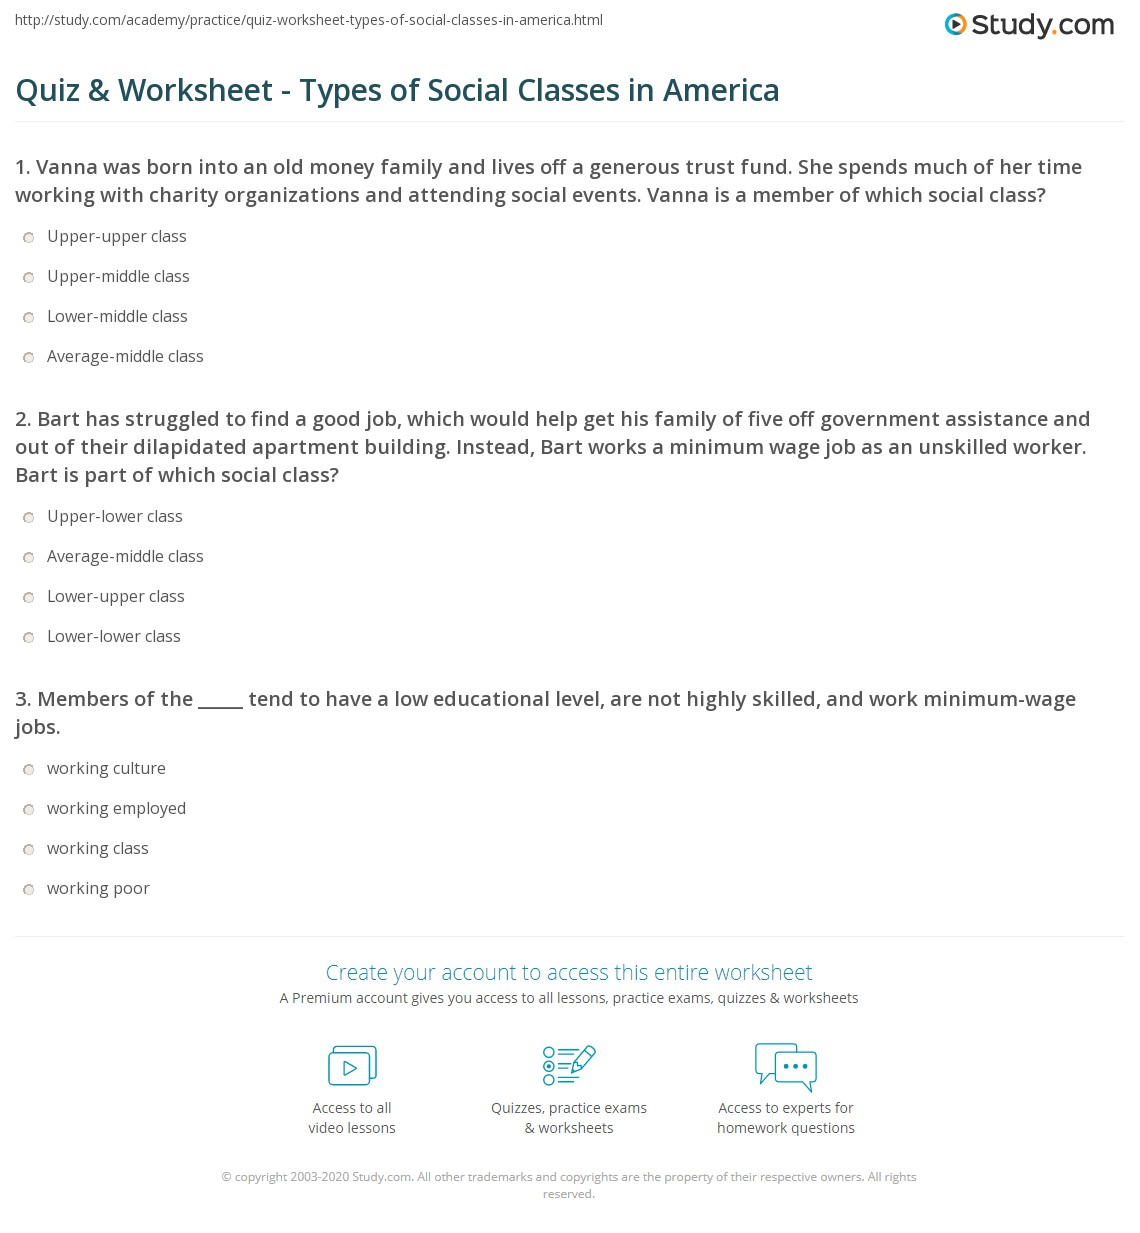 essays on social class in america Mantsios: class in america essay custom  social classes today are  recognized as being somewhat old fashioned or a thing of the past.